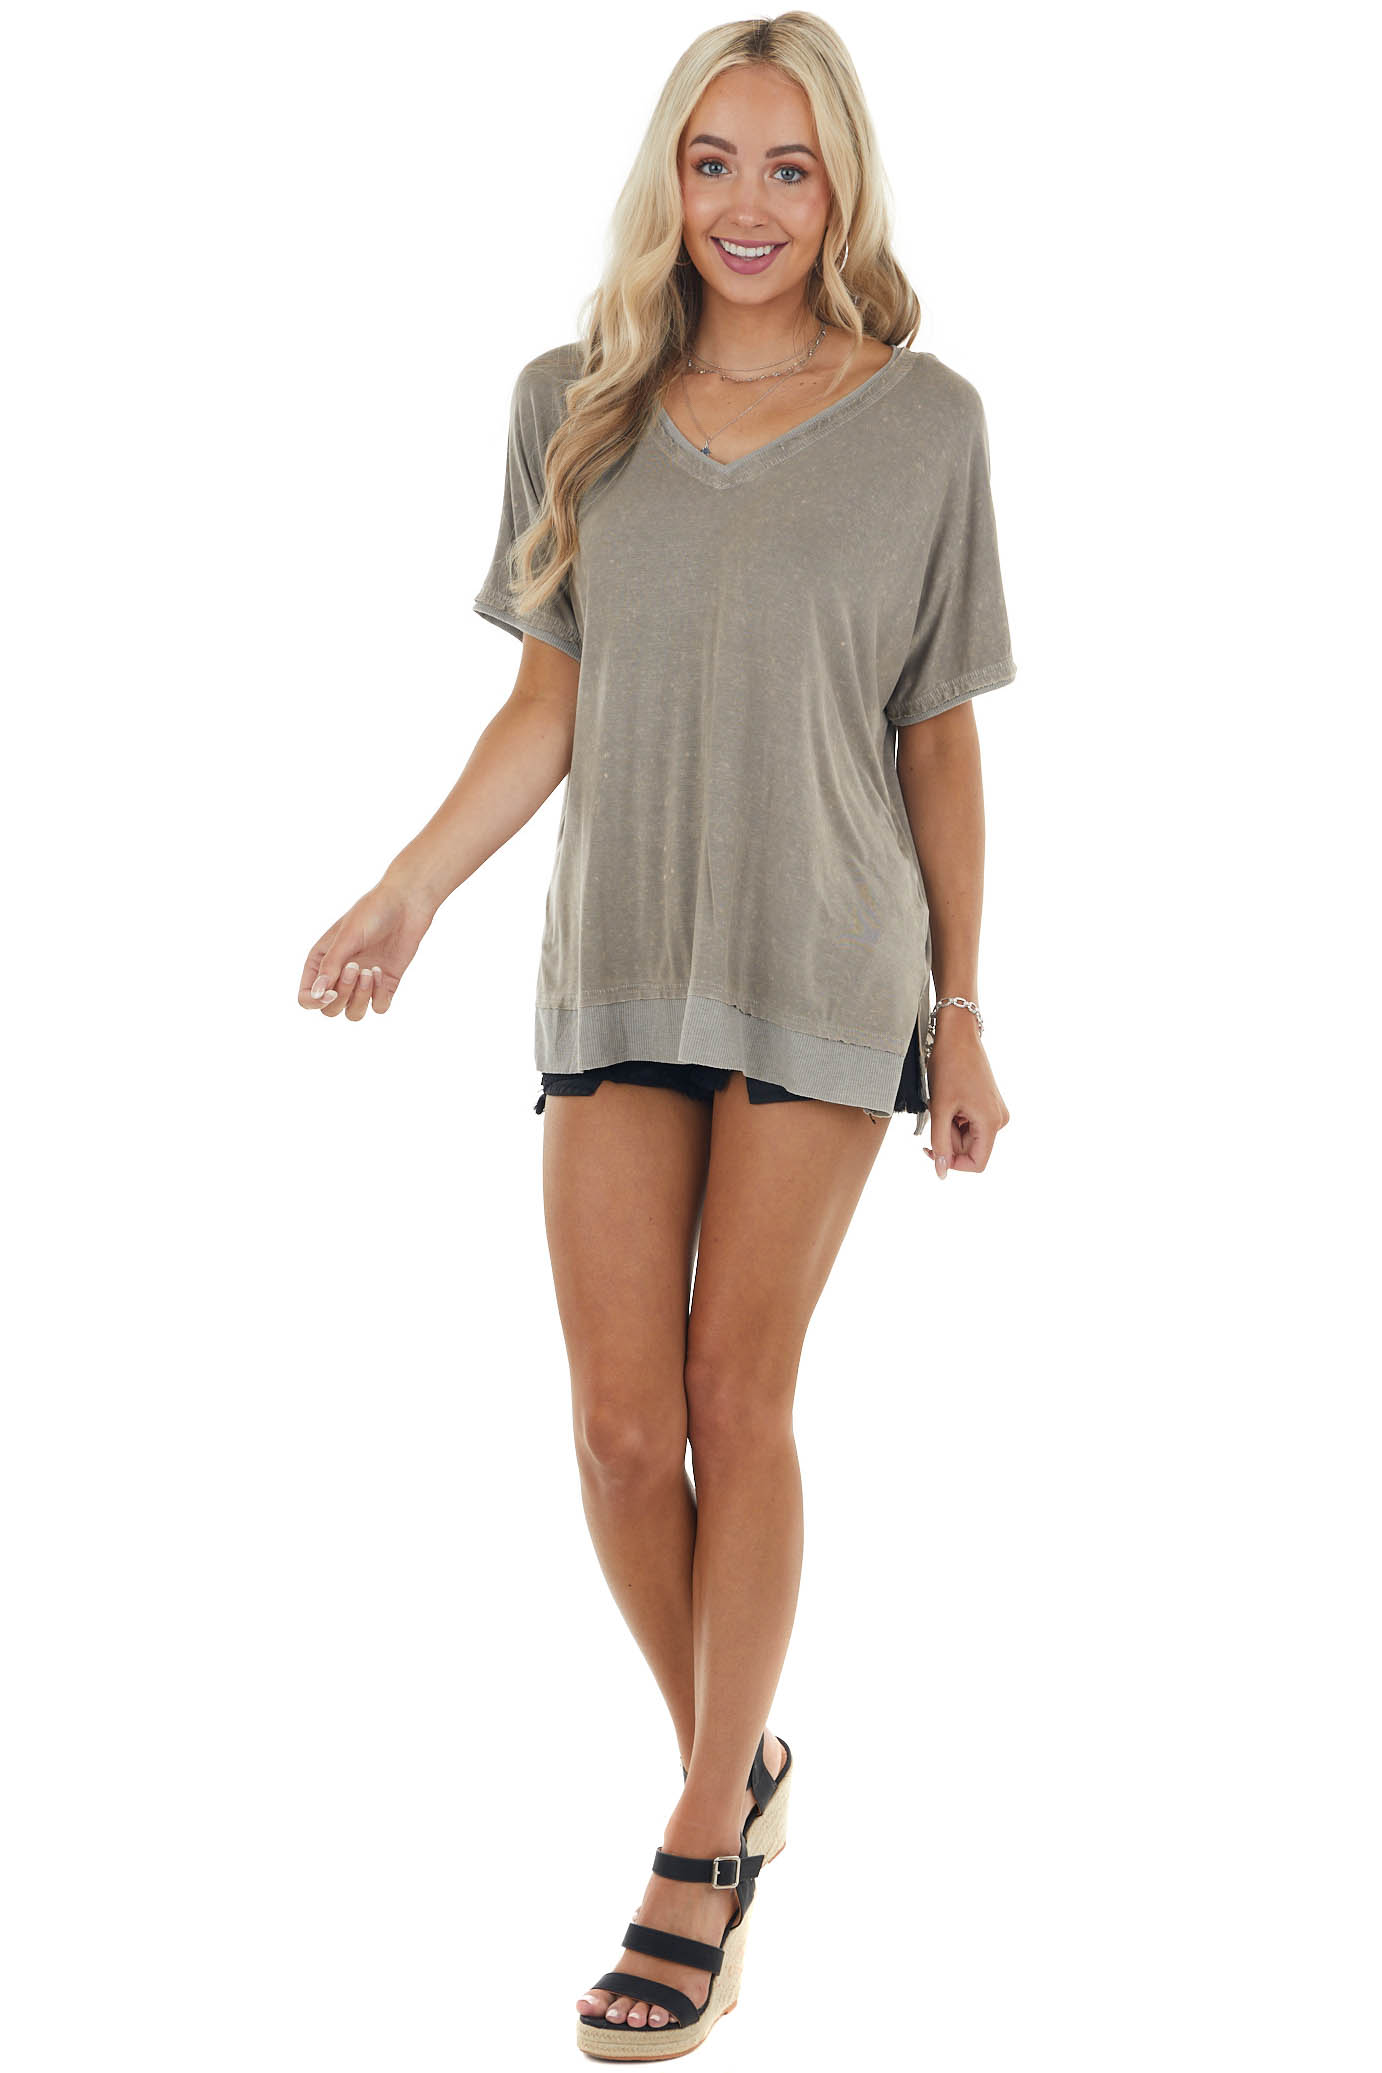 Taupe V Neck Stretchy Loose Fit Knit Top with Short Sleeves